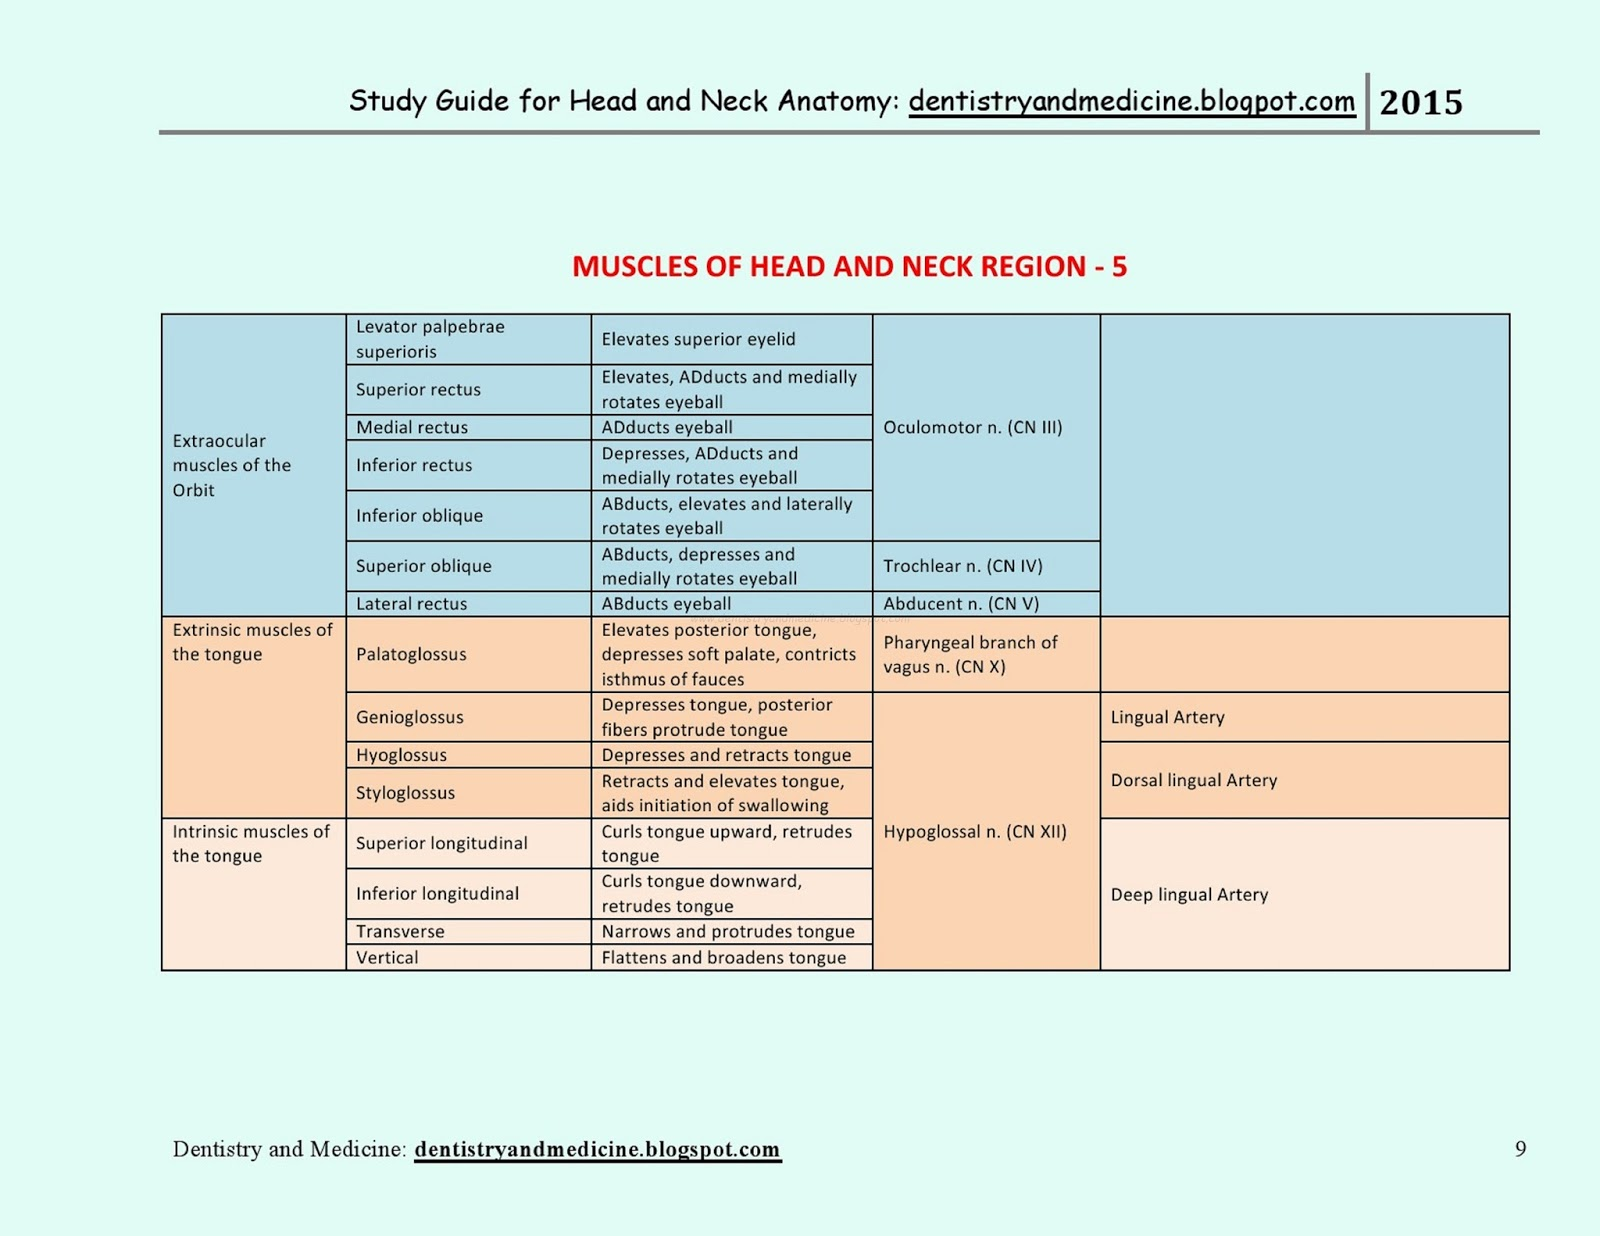 STUDY GUIDE FOR HEAD AND NECK ANATOMY - Muscles of Head and Neck ...